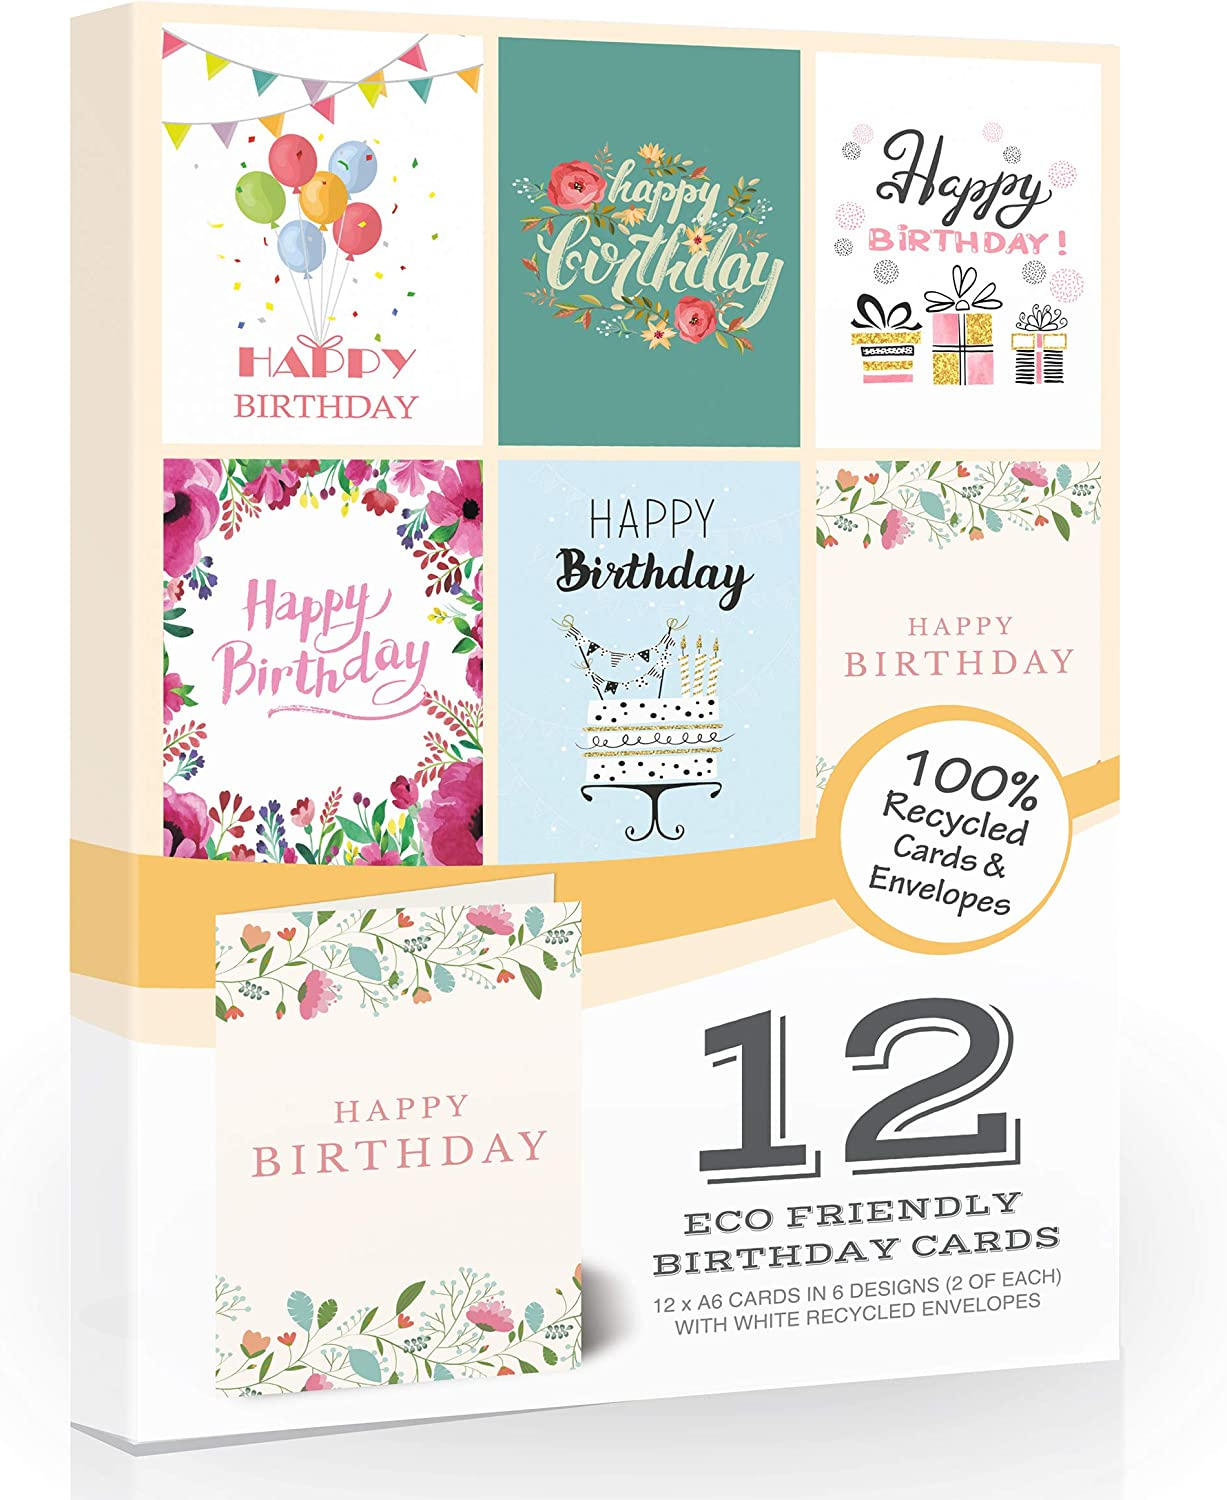 12 X Eco Friendly Birthday Cards Pack Envelopes By Olivia Samuel Great Value Pack Of Birthday Cards On 100 Recycled Card 6 Designs Made In The Uk Amazon Co Uk Office Products